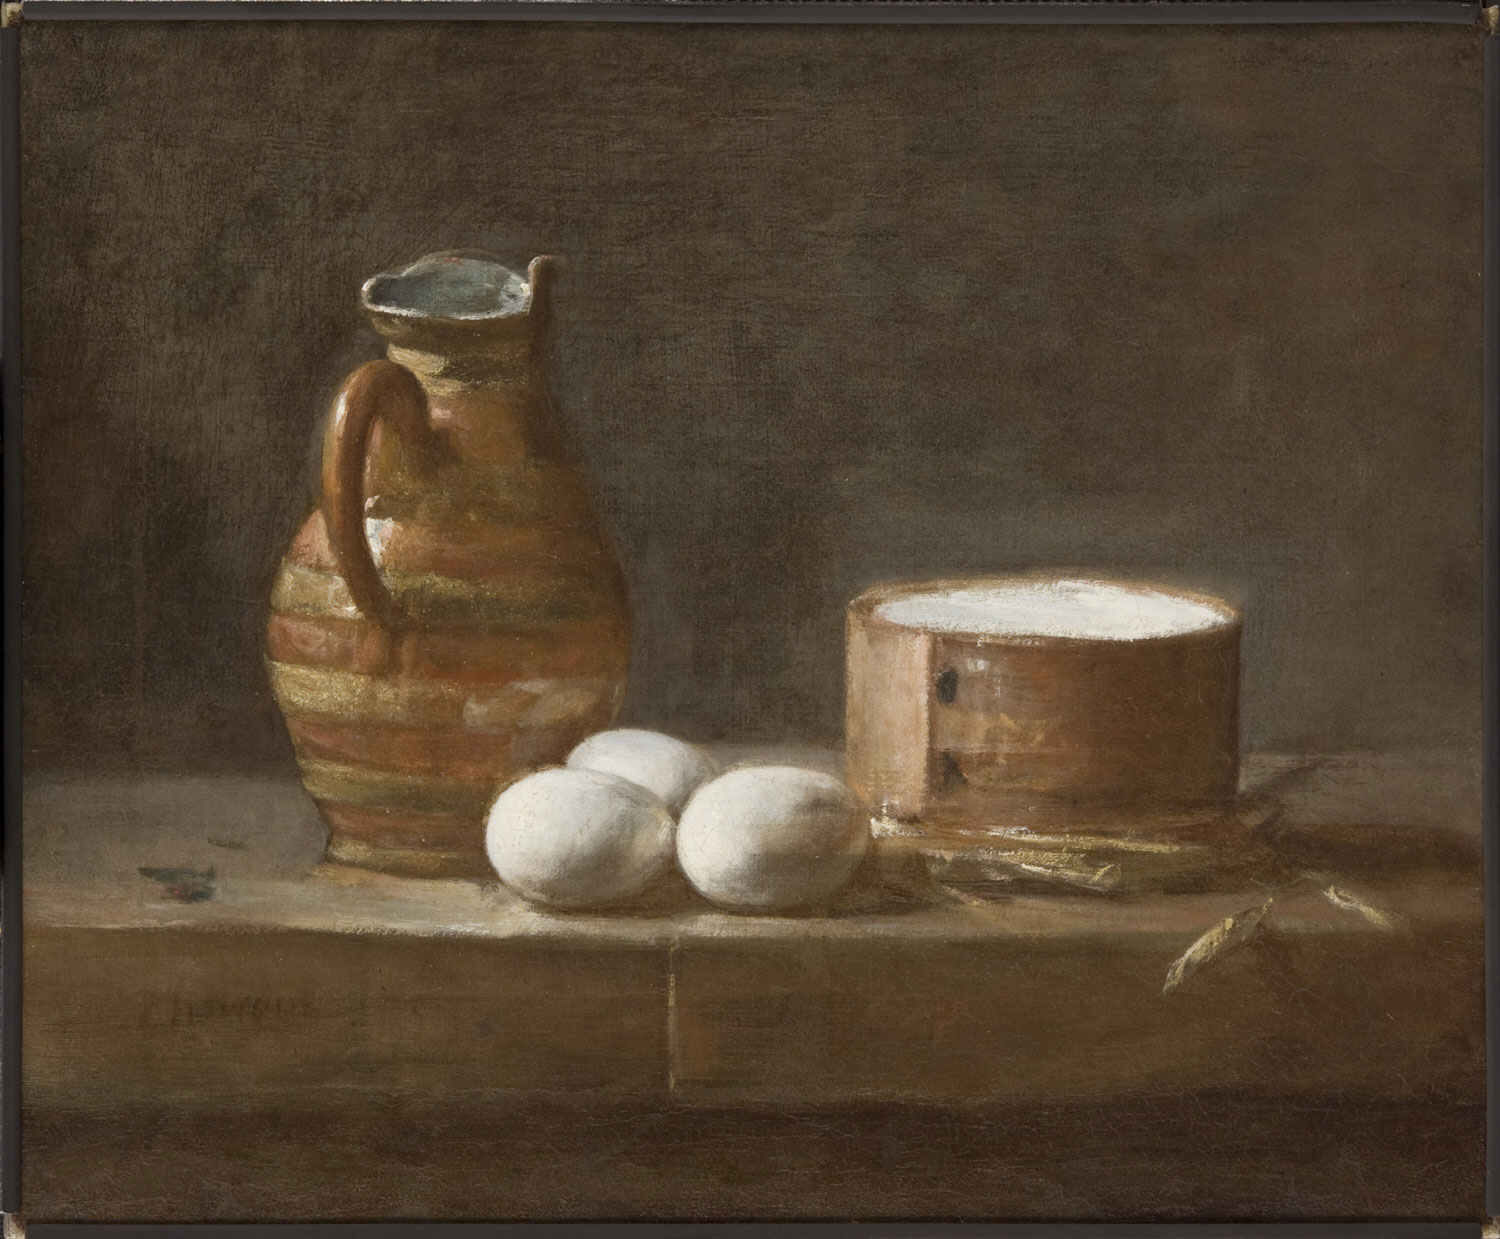 Still Life with Eggs, Cheese, and a Pitcher